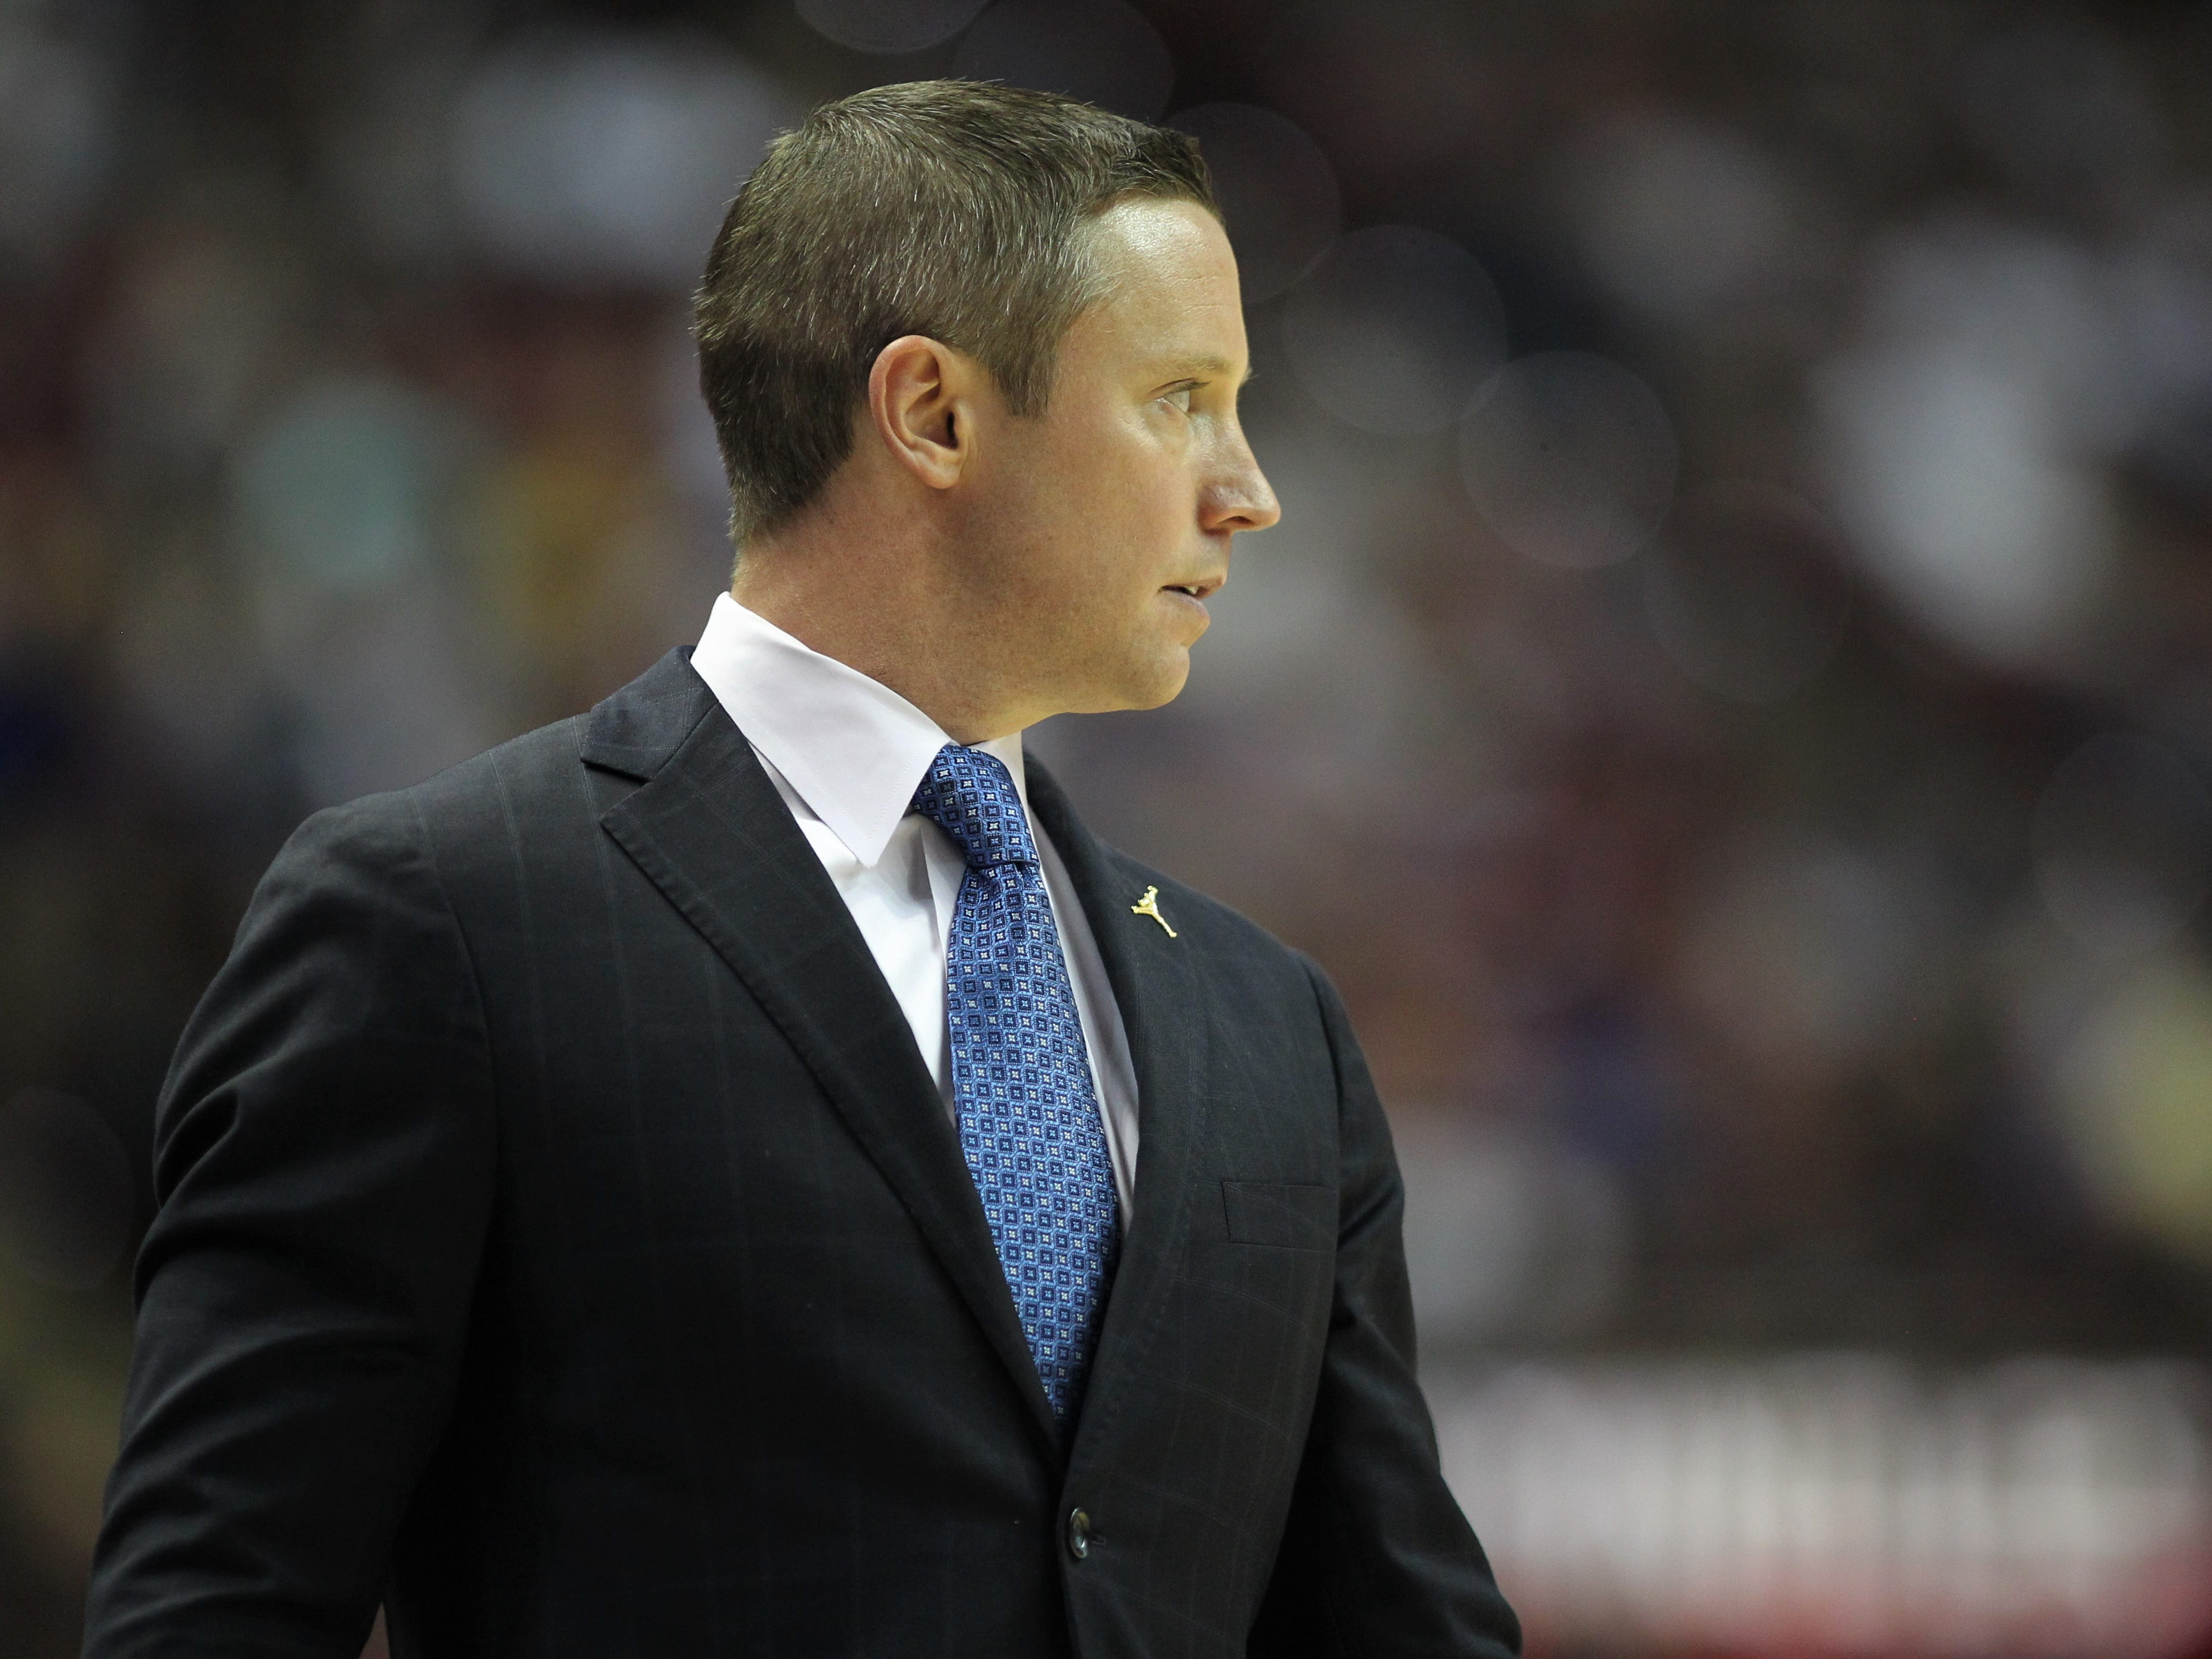 Florida men's basketball head coach Mike White watches his team during the Sunshine Showdown game against FSU on Tuesday at the Tucker Civic Center.